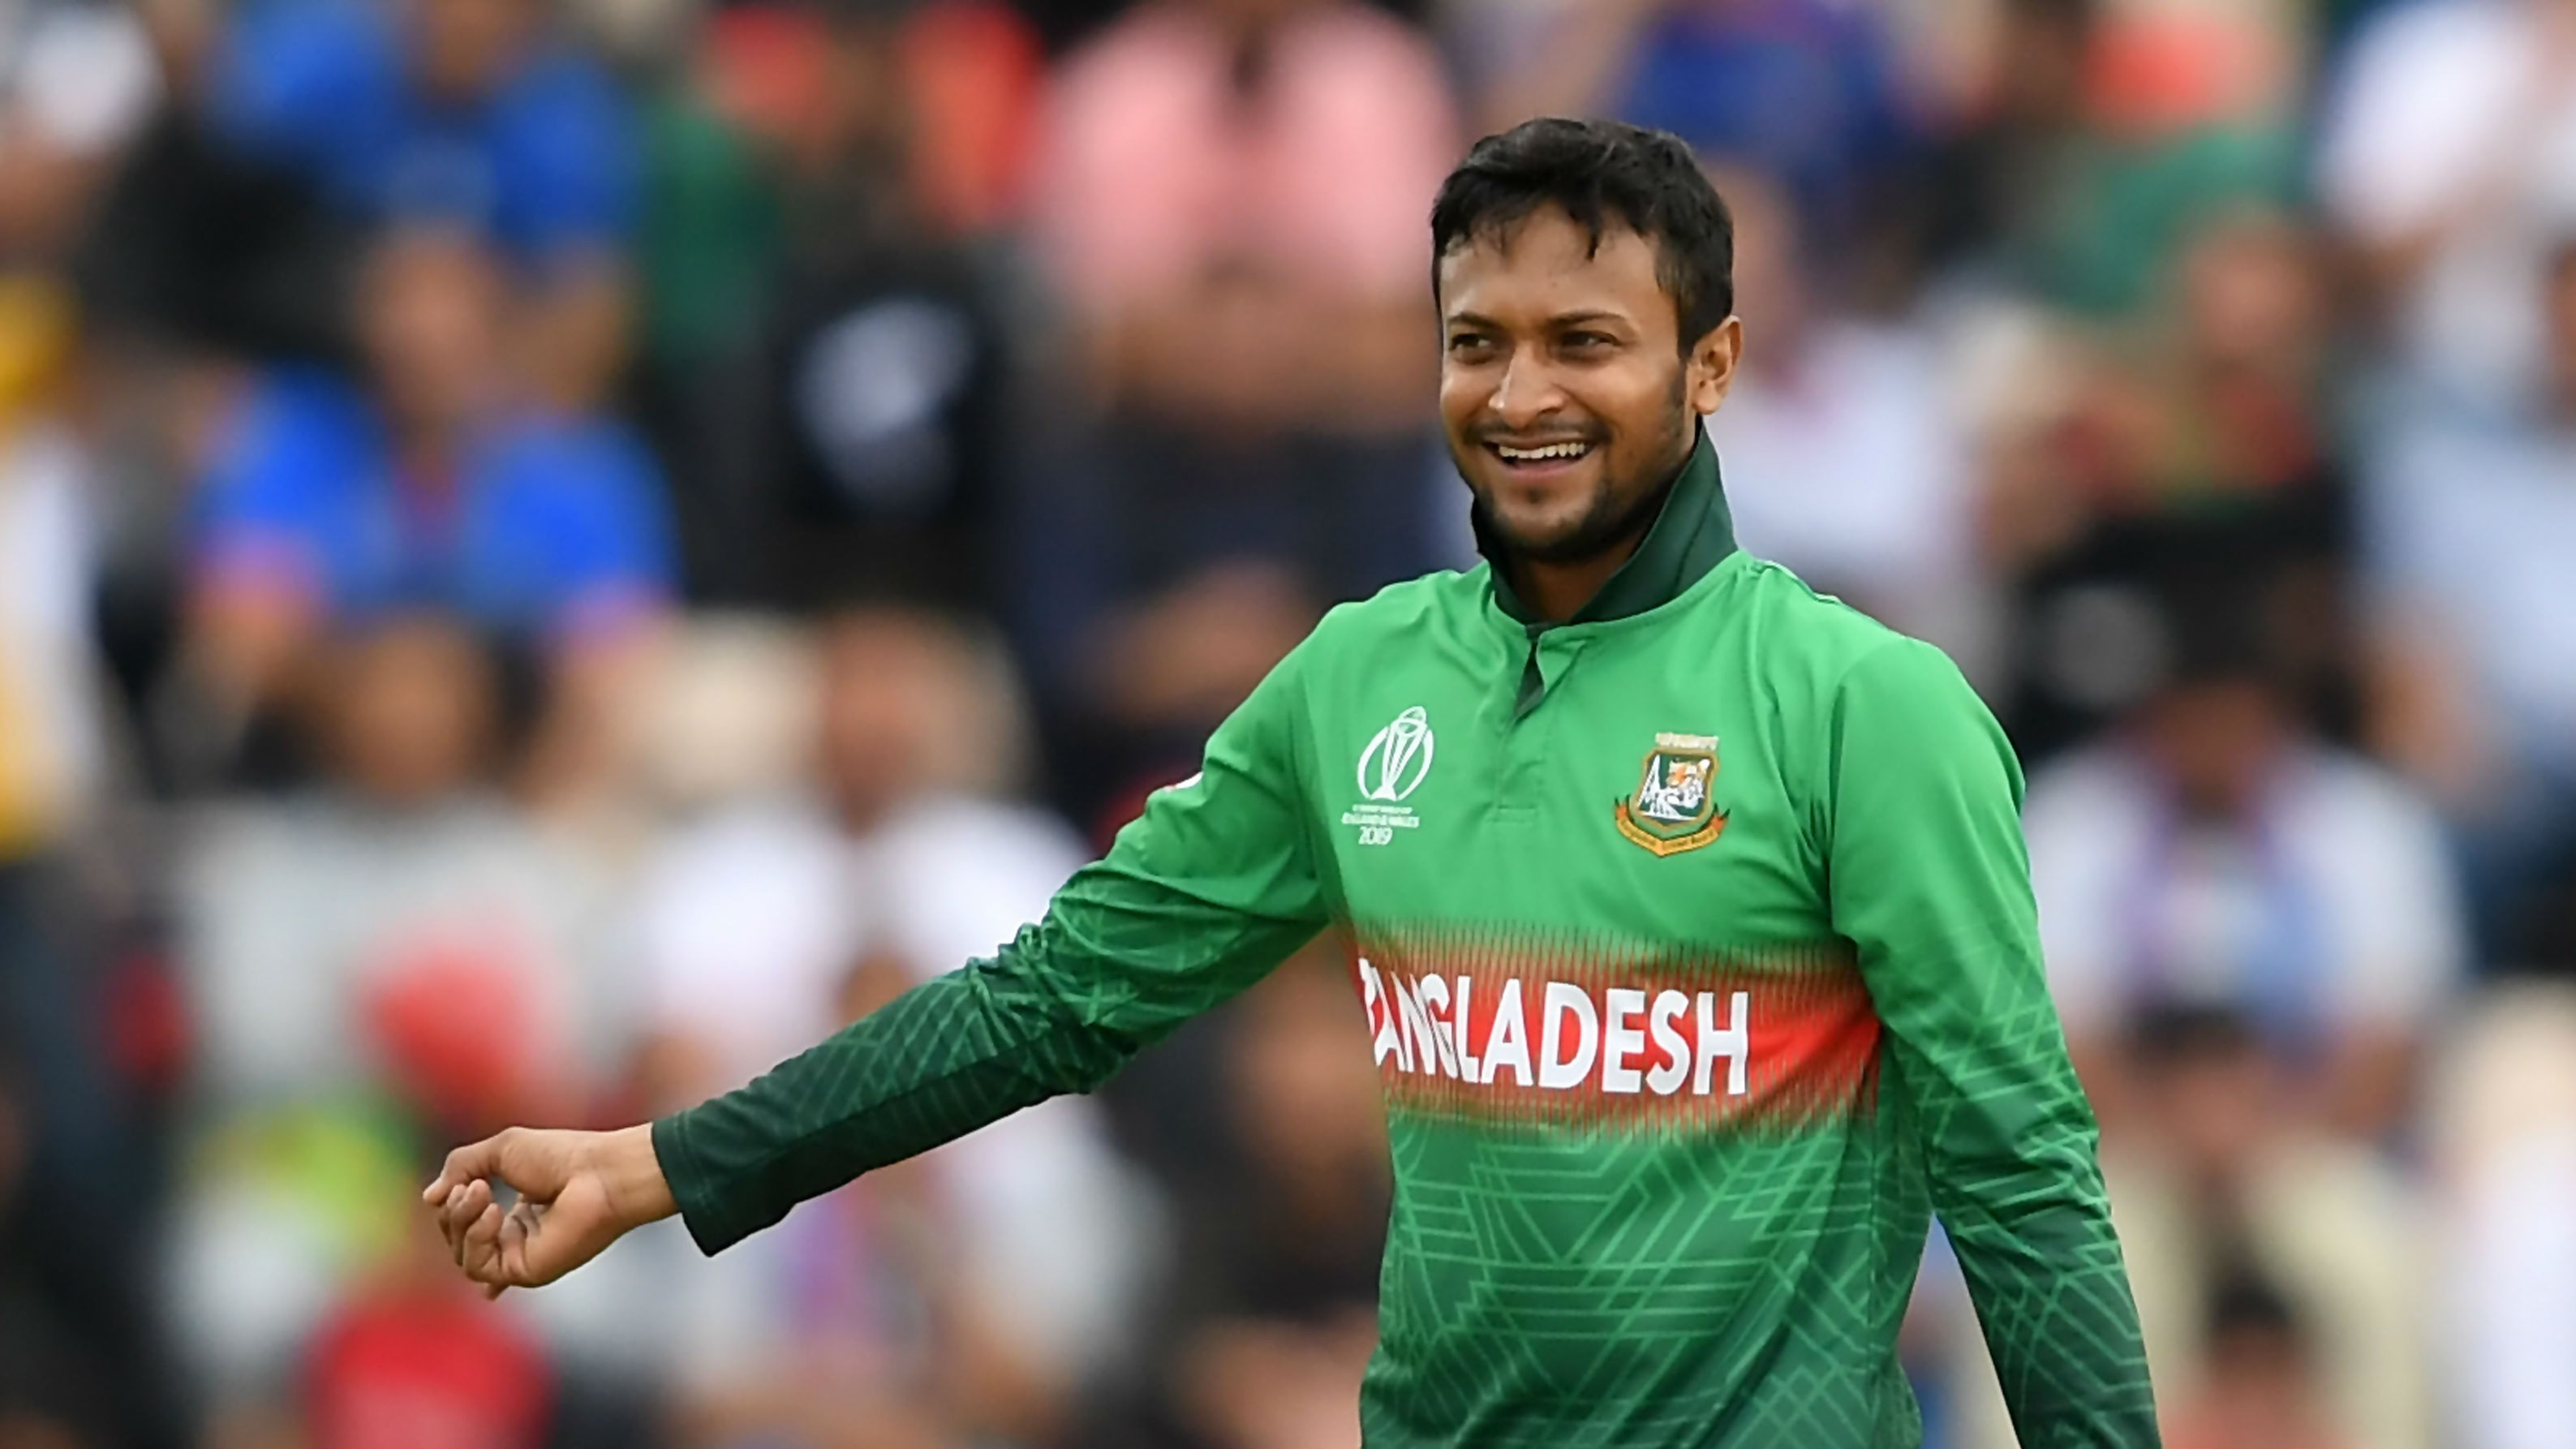 BAN v WI 2021: Bangladesh announce squad for 3 ODIs against West Indies, Shakib Al Hasan included after ban